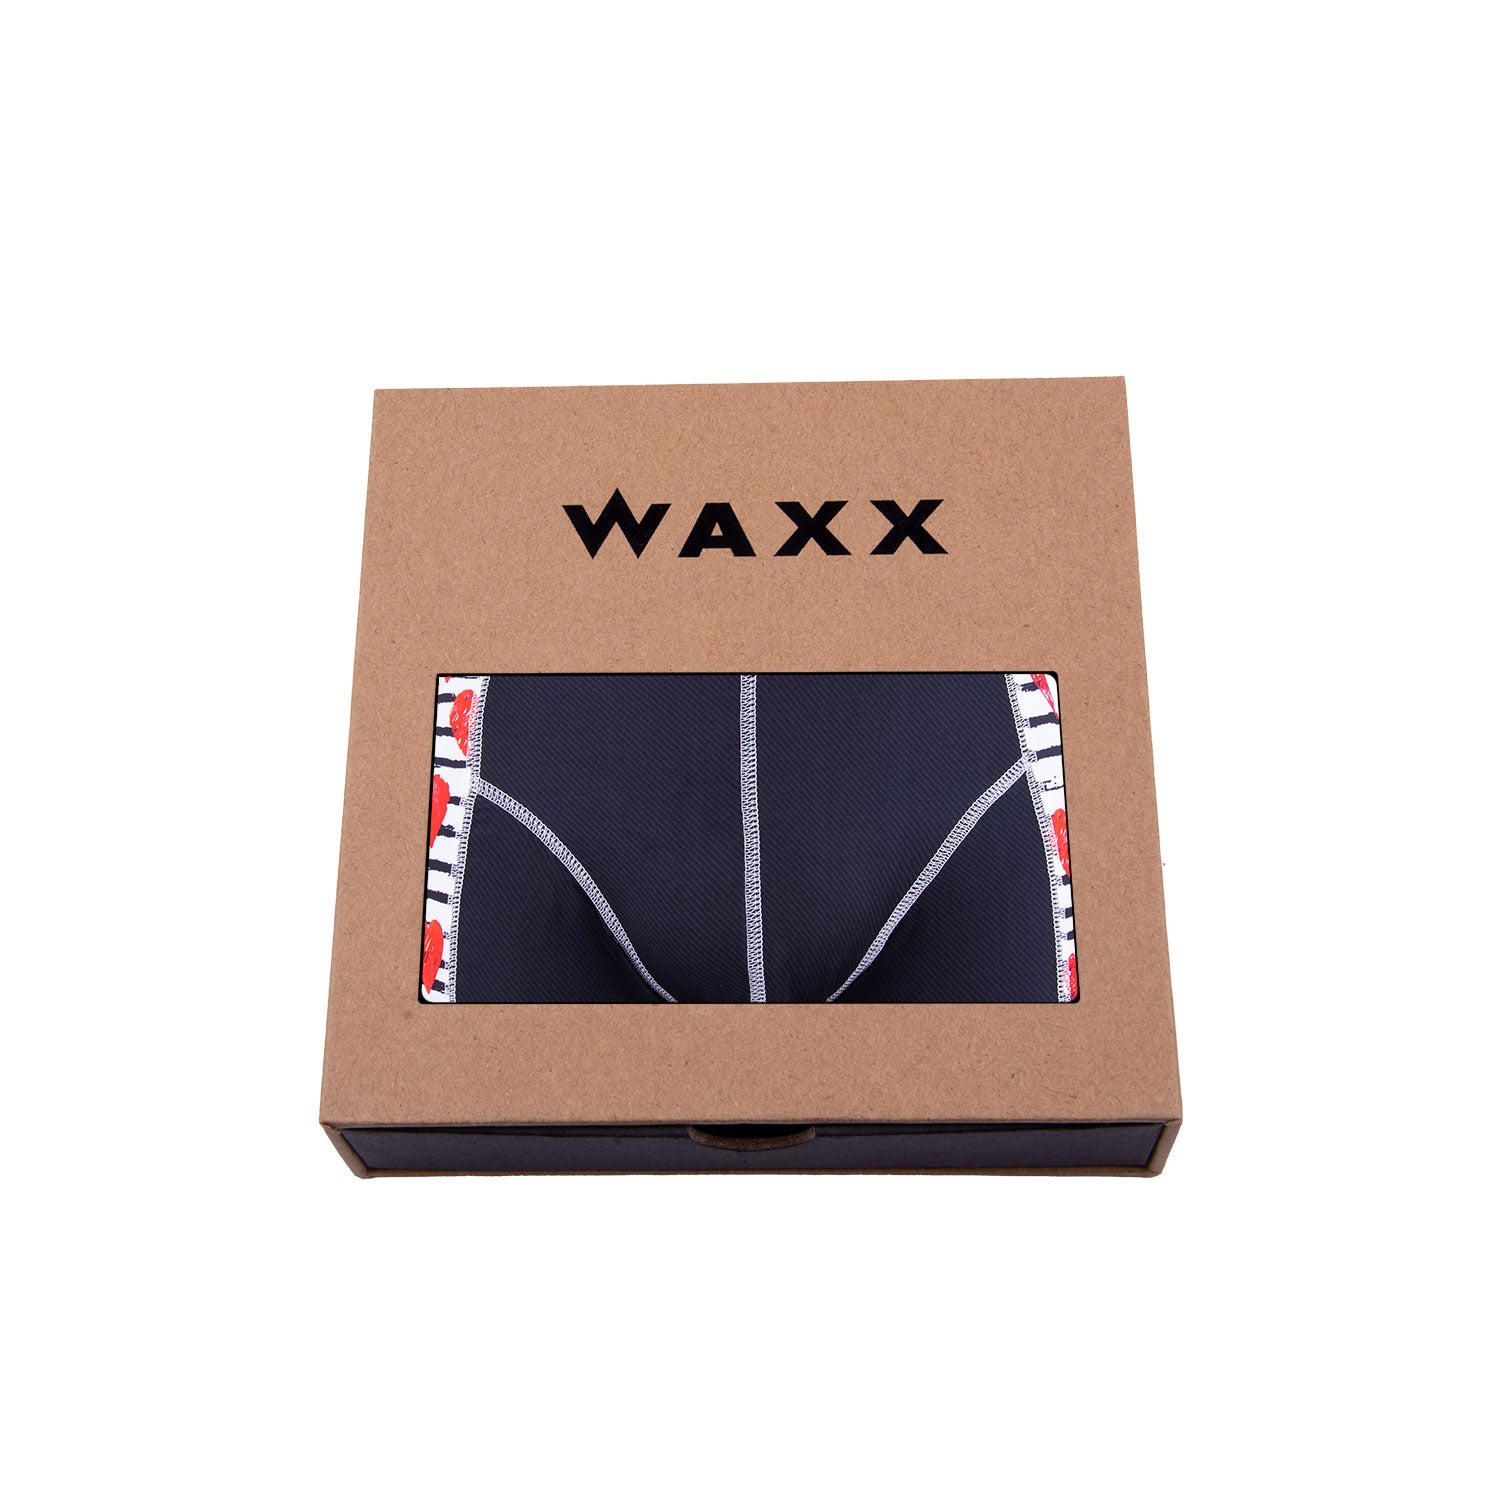 Waxx Men's Trunk Boxer Short Lover